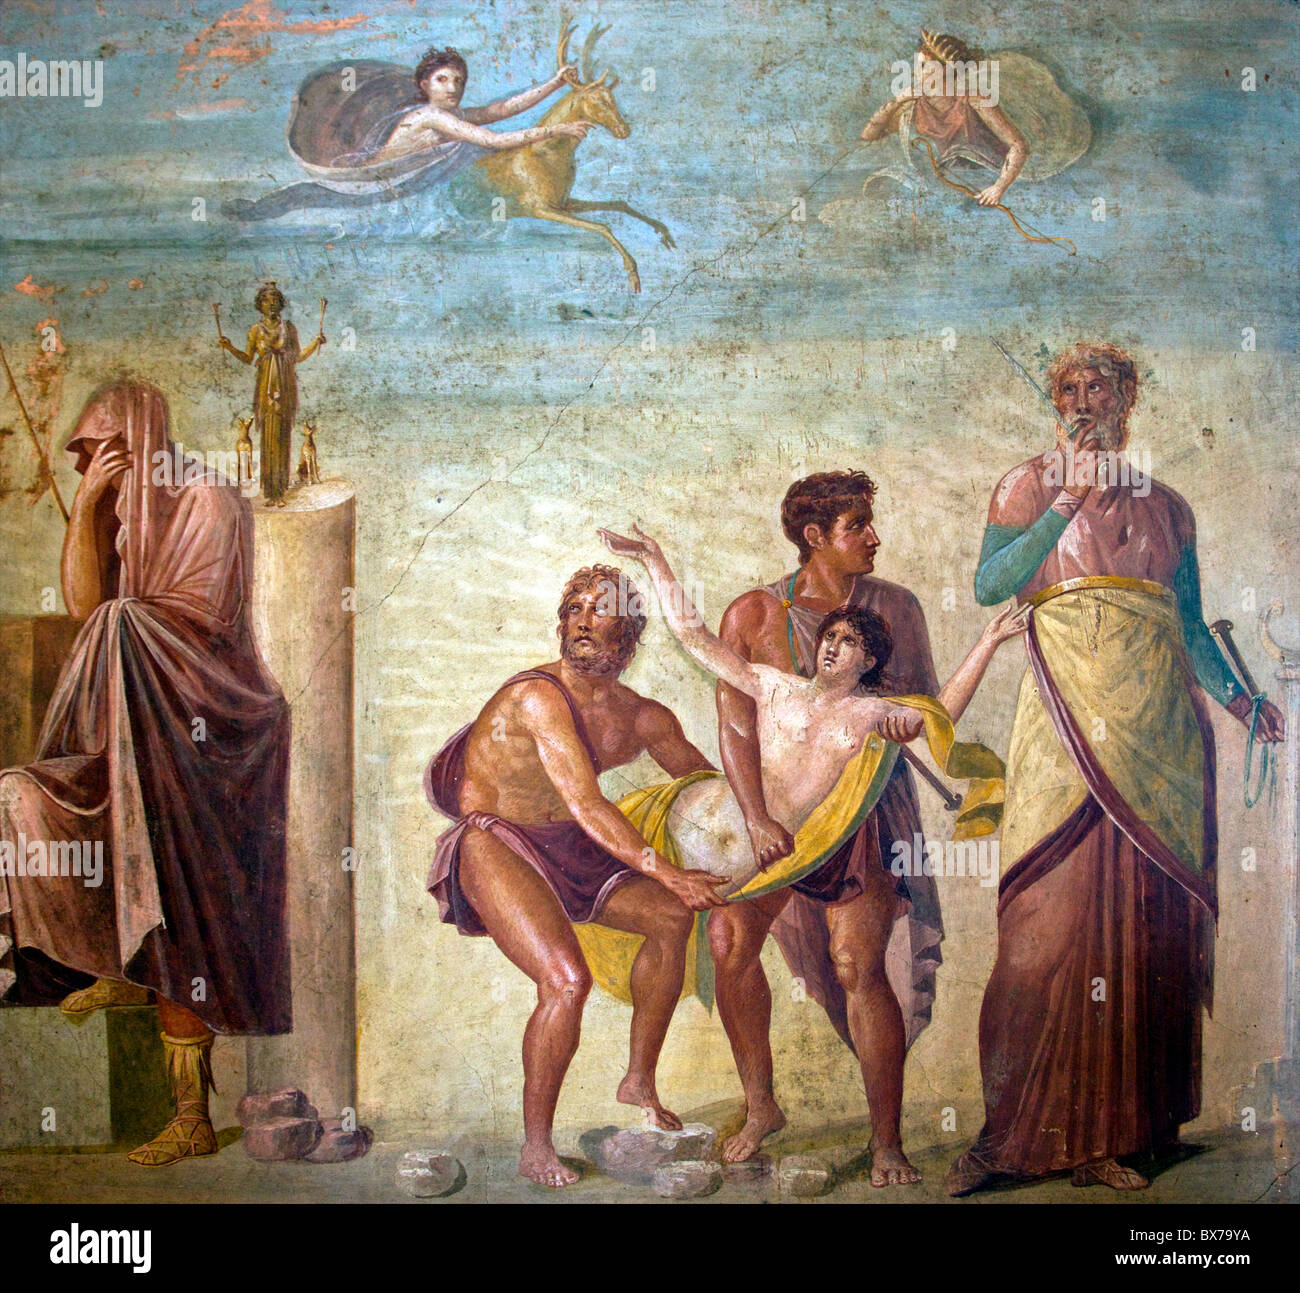 Artemis sends a deer to spare sacrifice of Iphigenia, House of Tragic Poet from Pompeii, National Archaeological - Stock Image